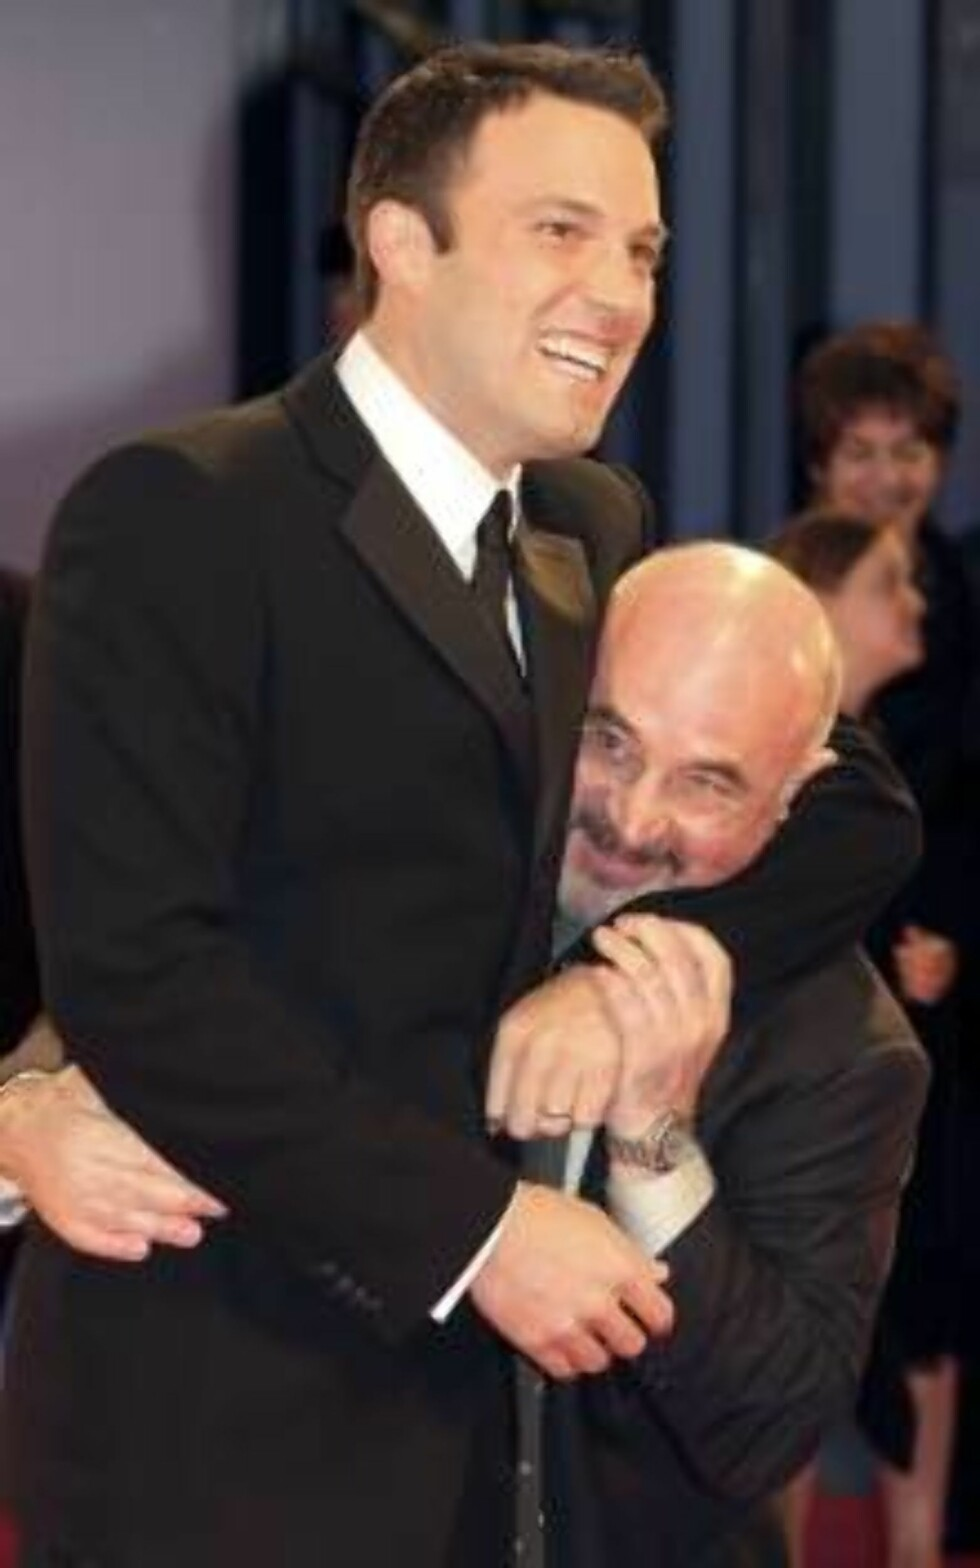 VENICE, ITALY - AUGUST 31:  Actors Ben Affleck and Bob Hoskins attends the Premiere of 'Hollywoodland' on the second day of the 63rd Venice Film Festival on August 31, 2006 in Venice, Italy.  (Photo by Elisabetta Villa/Getty Images) *** Local Caption *** Foto: All Over Press